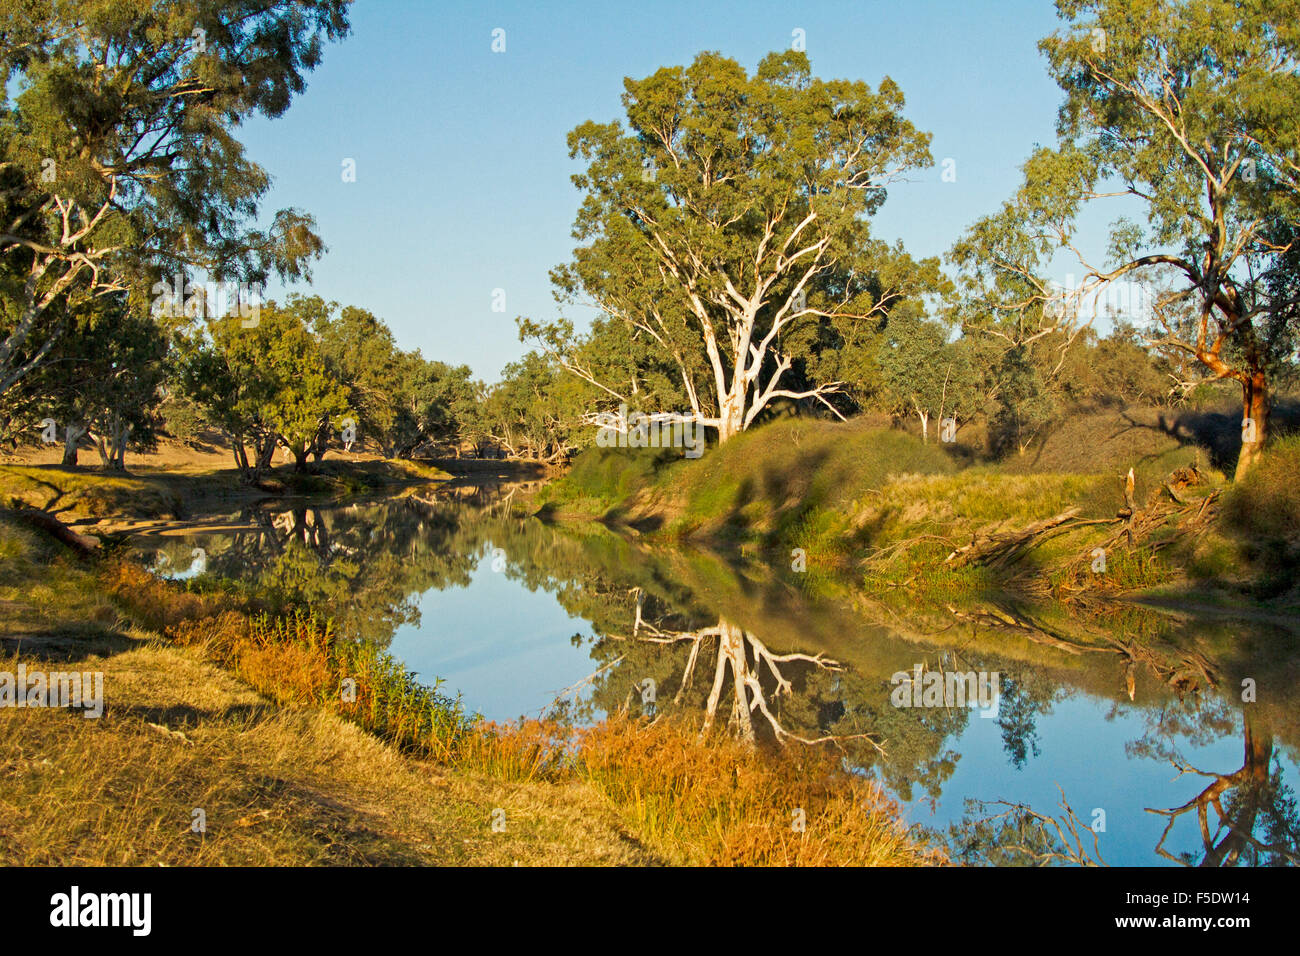 Picturesque landscape at Cooper Creek with tall gum trees & blue sky reflected in calm water of outback waterway - Stock Image